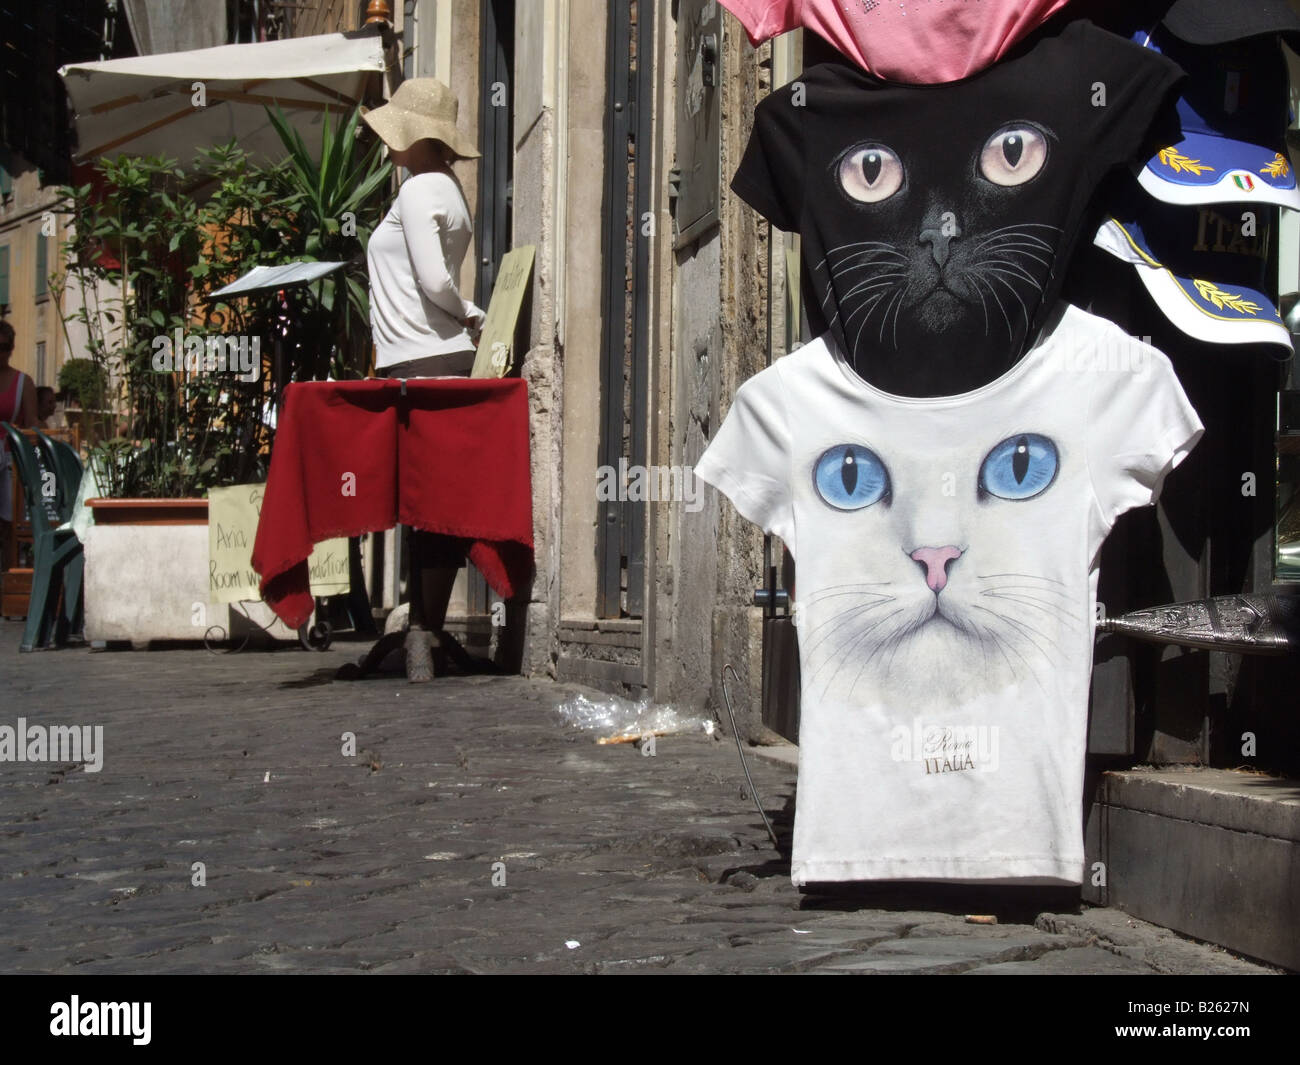 69fbe147 cat face t shirts for sale in gift shop stall stand in rome, italy ...